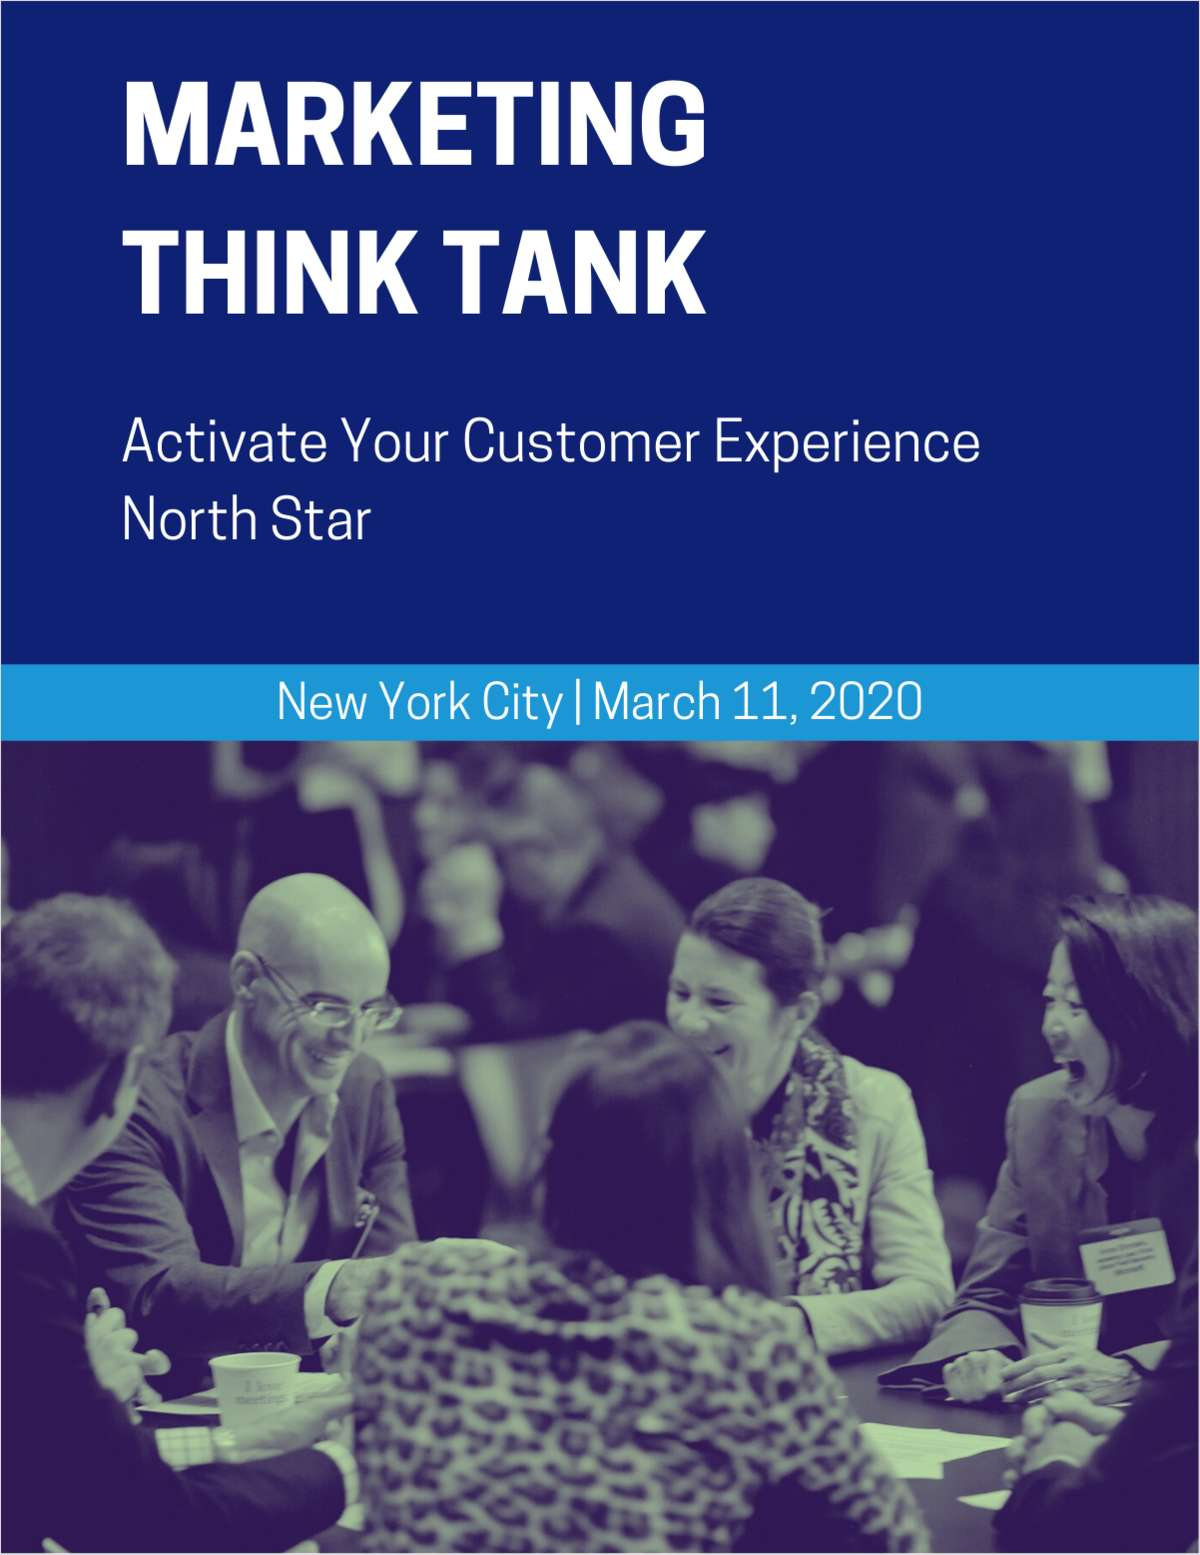 Marketing Think Tank